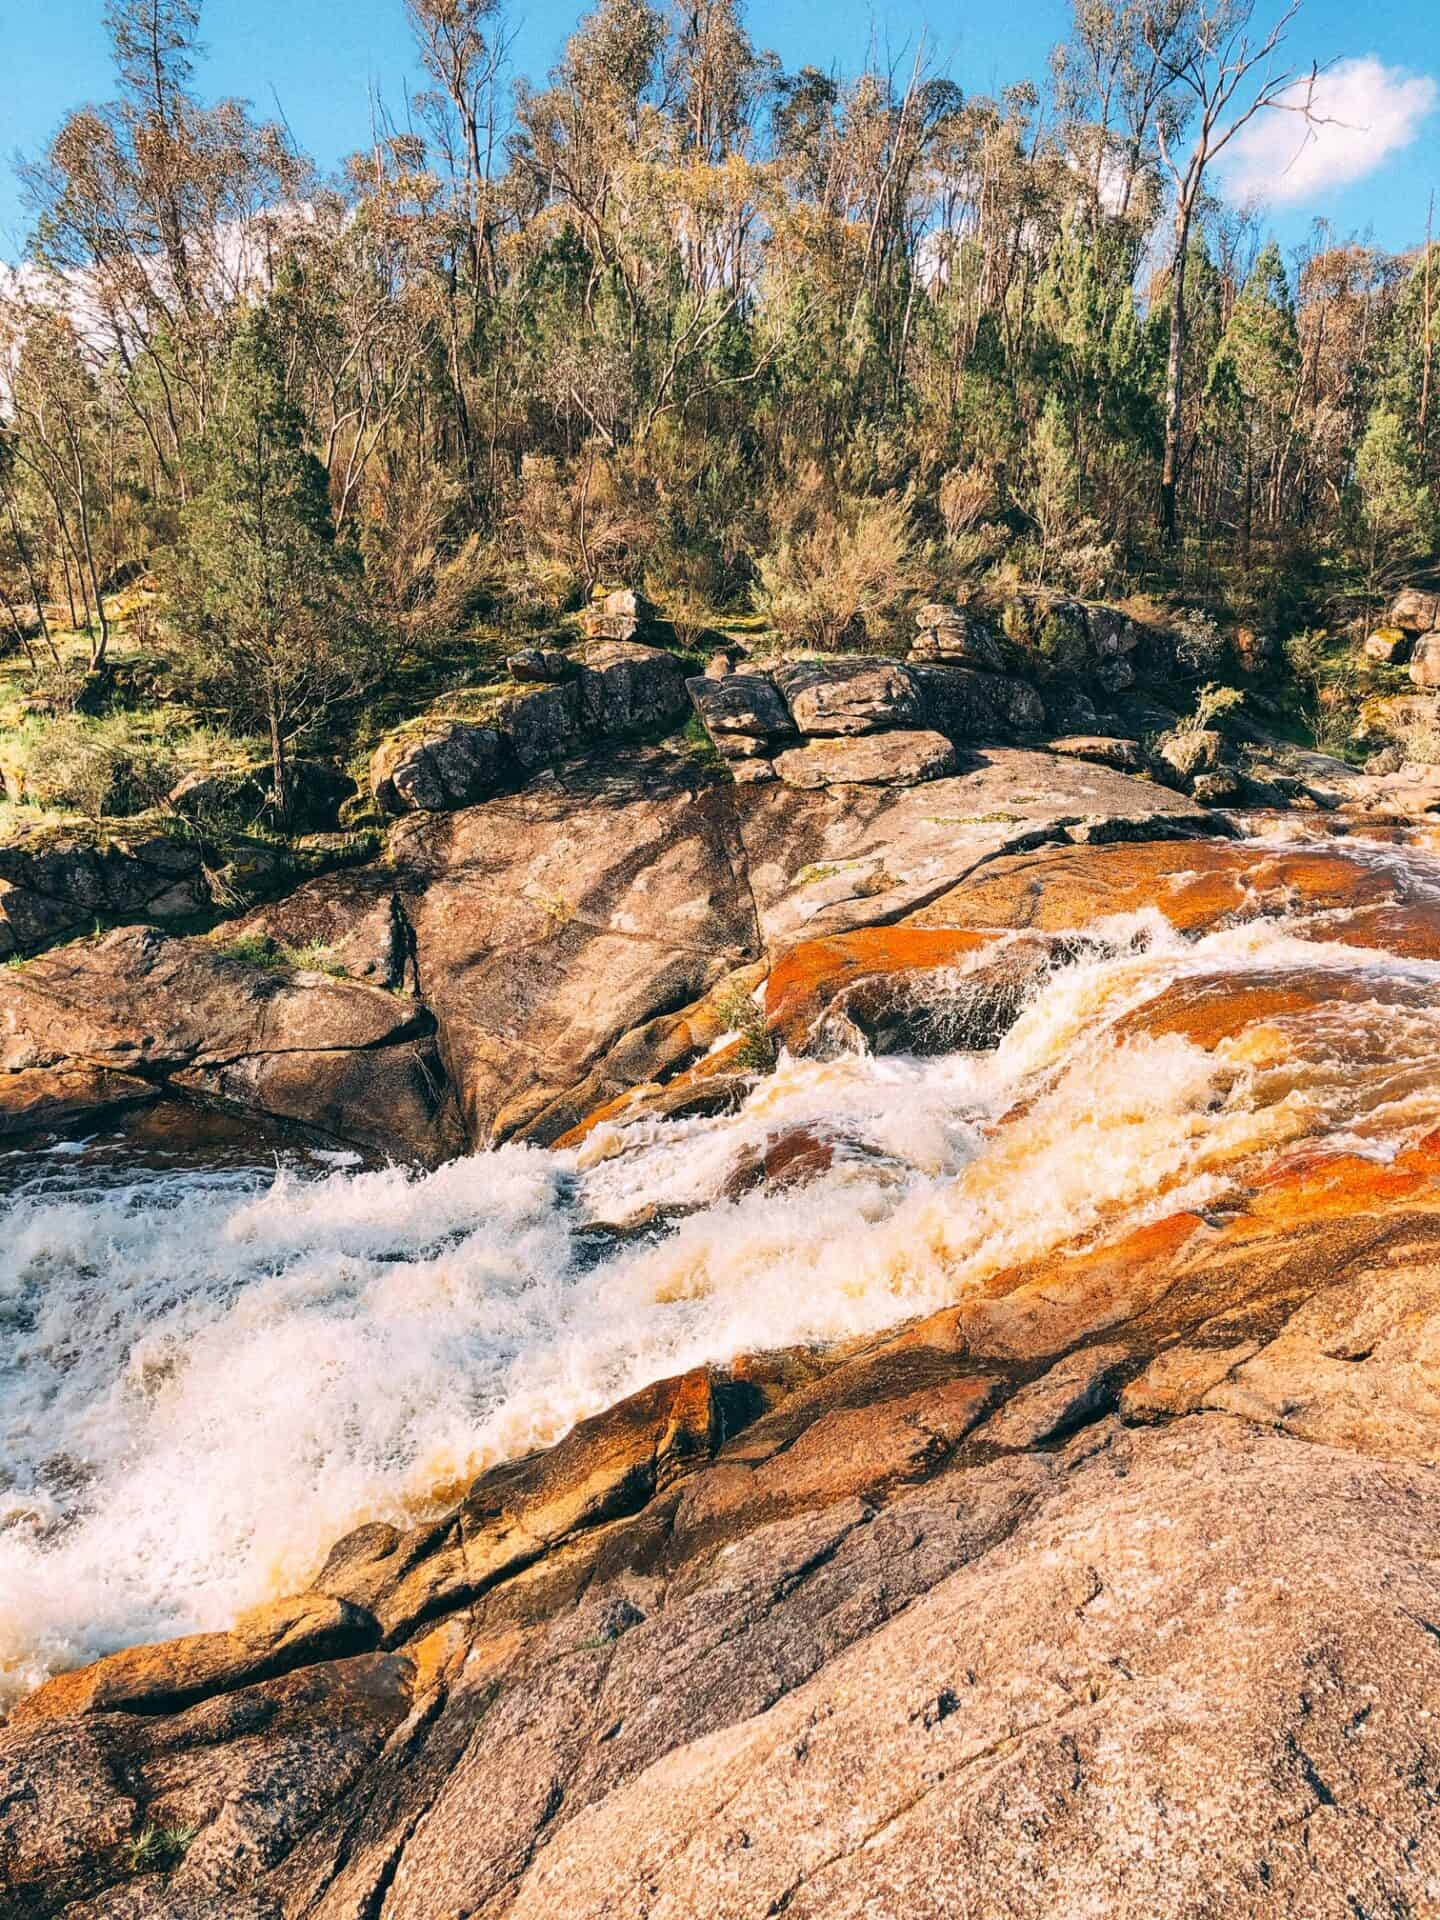 A water fall flowing over rocks with an birgh orange colour. Trees line the banks of the waterfalls